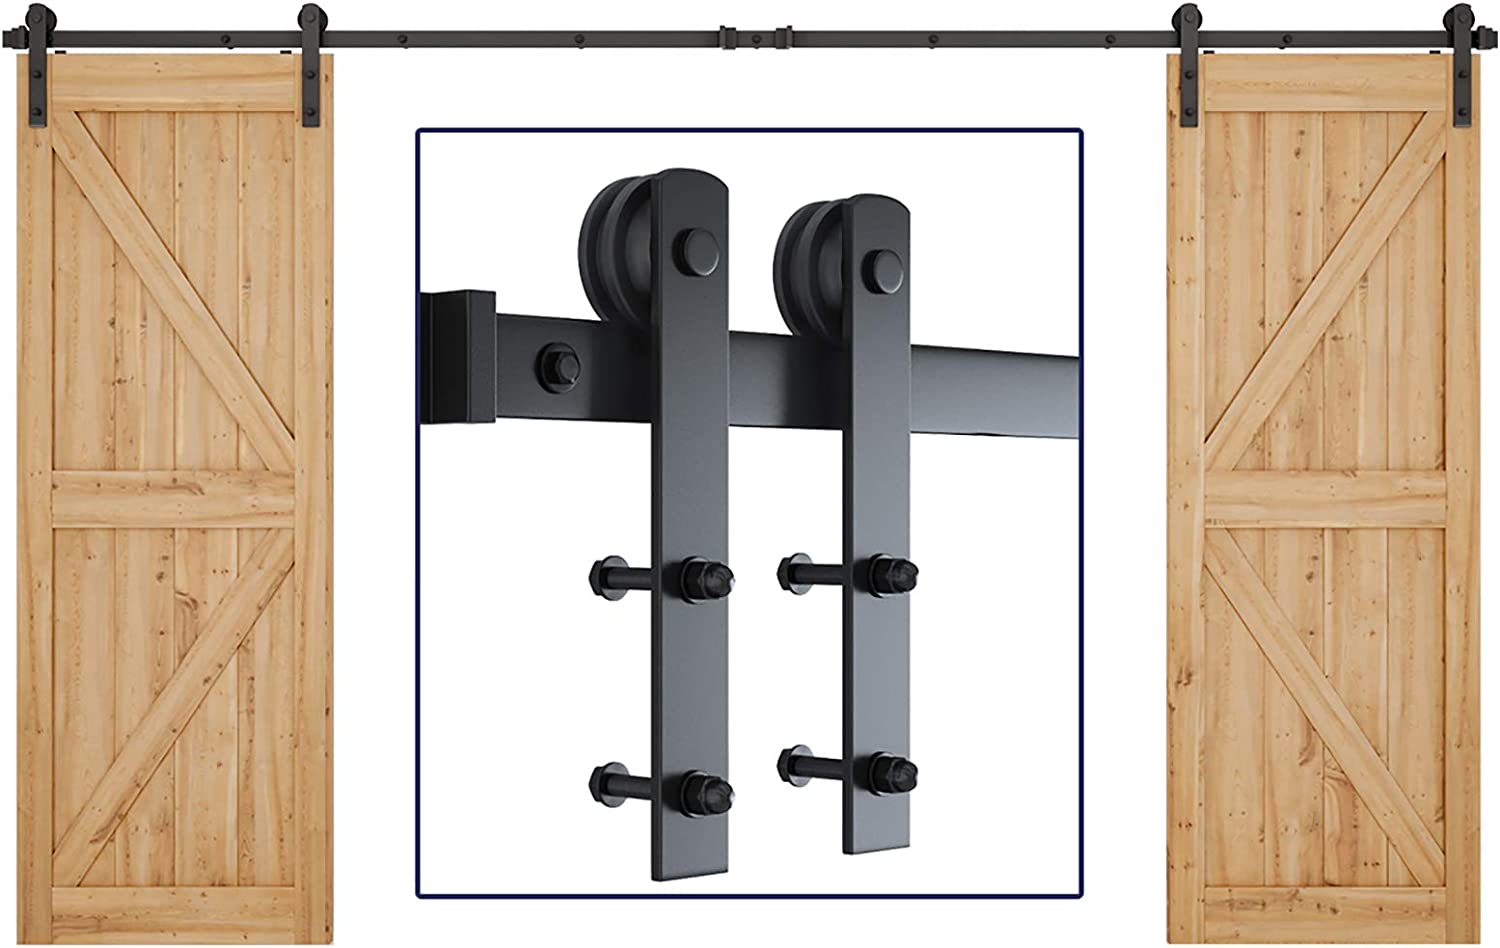 """SMARTSTANDARD 12ft Heavy Duty Double Door Sliding Barn Door Hardware Kit -Smoothly and Quietly -Easy to Install -Includes Step-by-Step Installation Instruction -Fit 30""""- 36"""" Wide Doors Panel (I Shape)"""